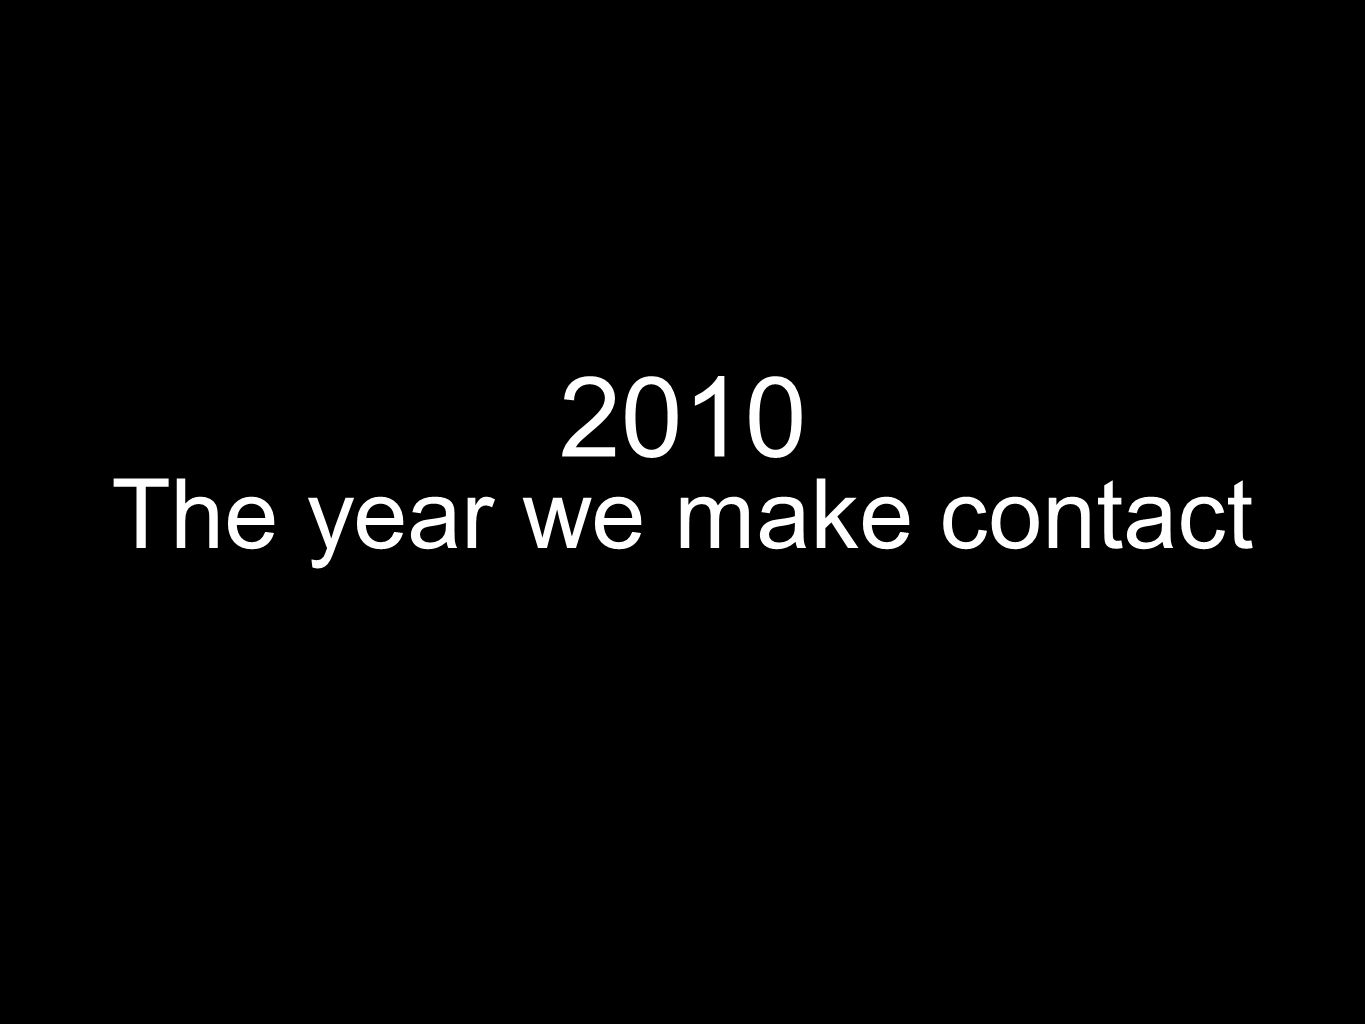 2010 The year we make contact